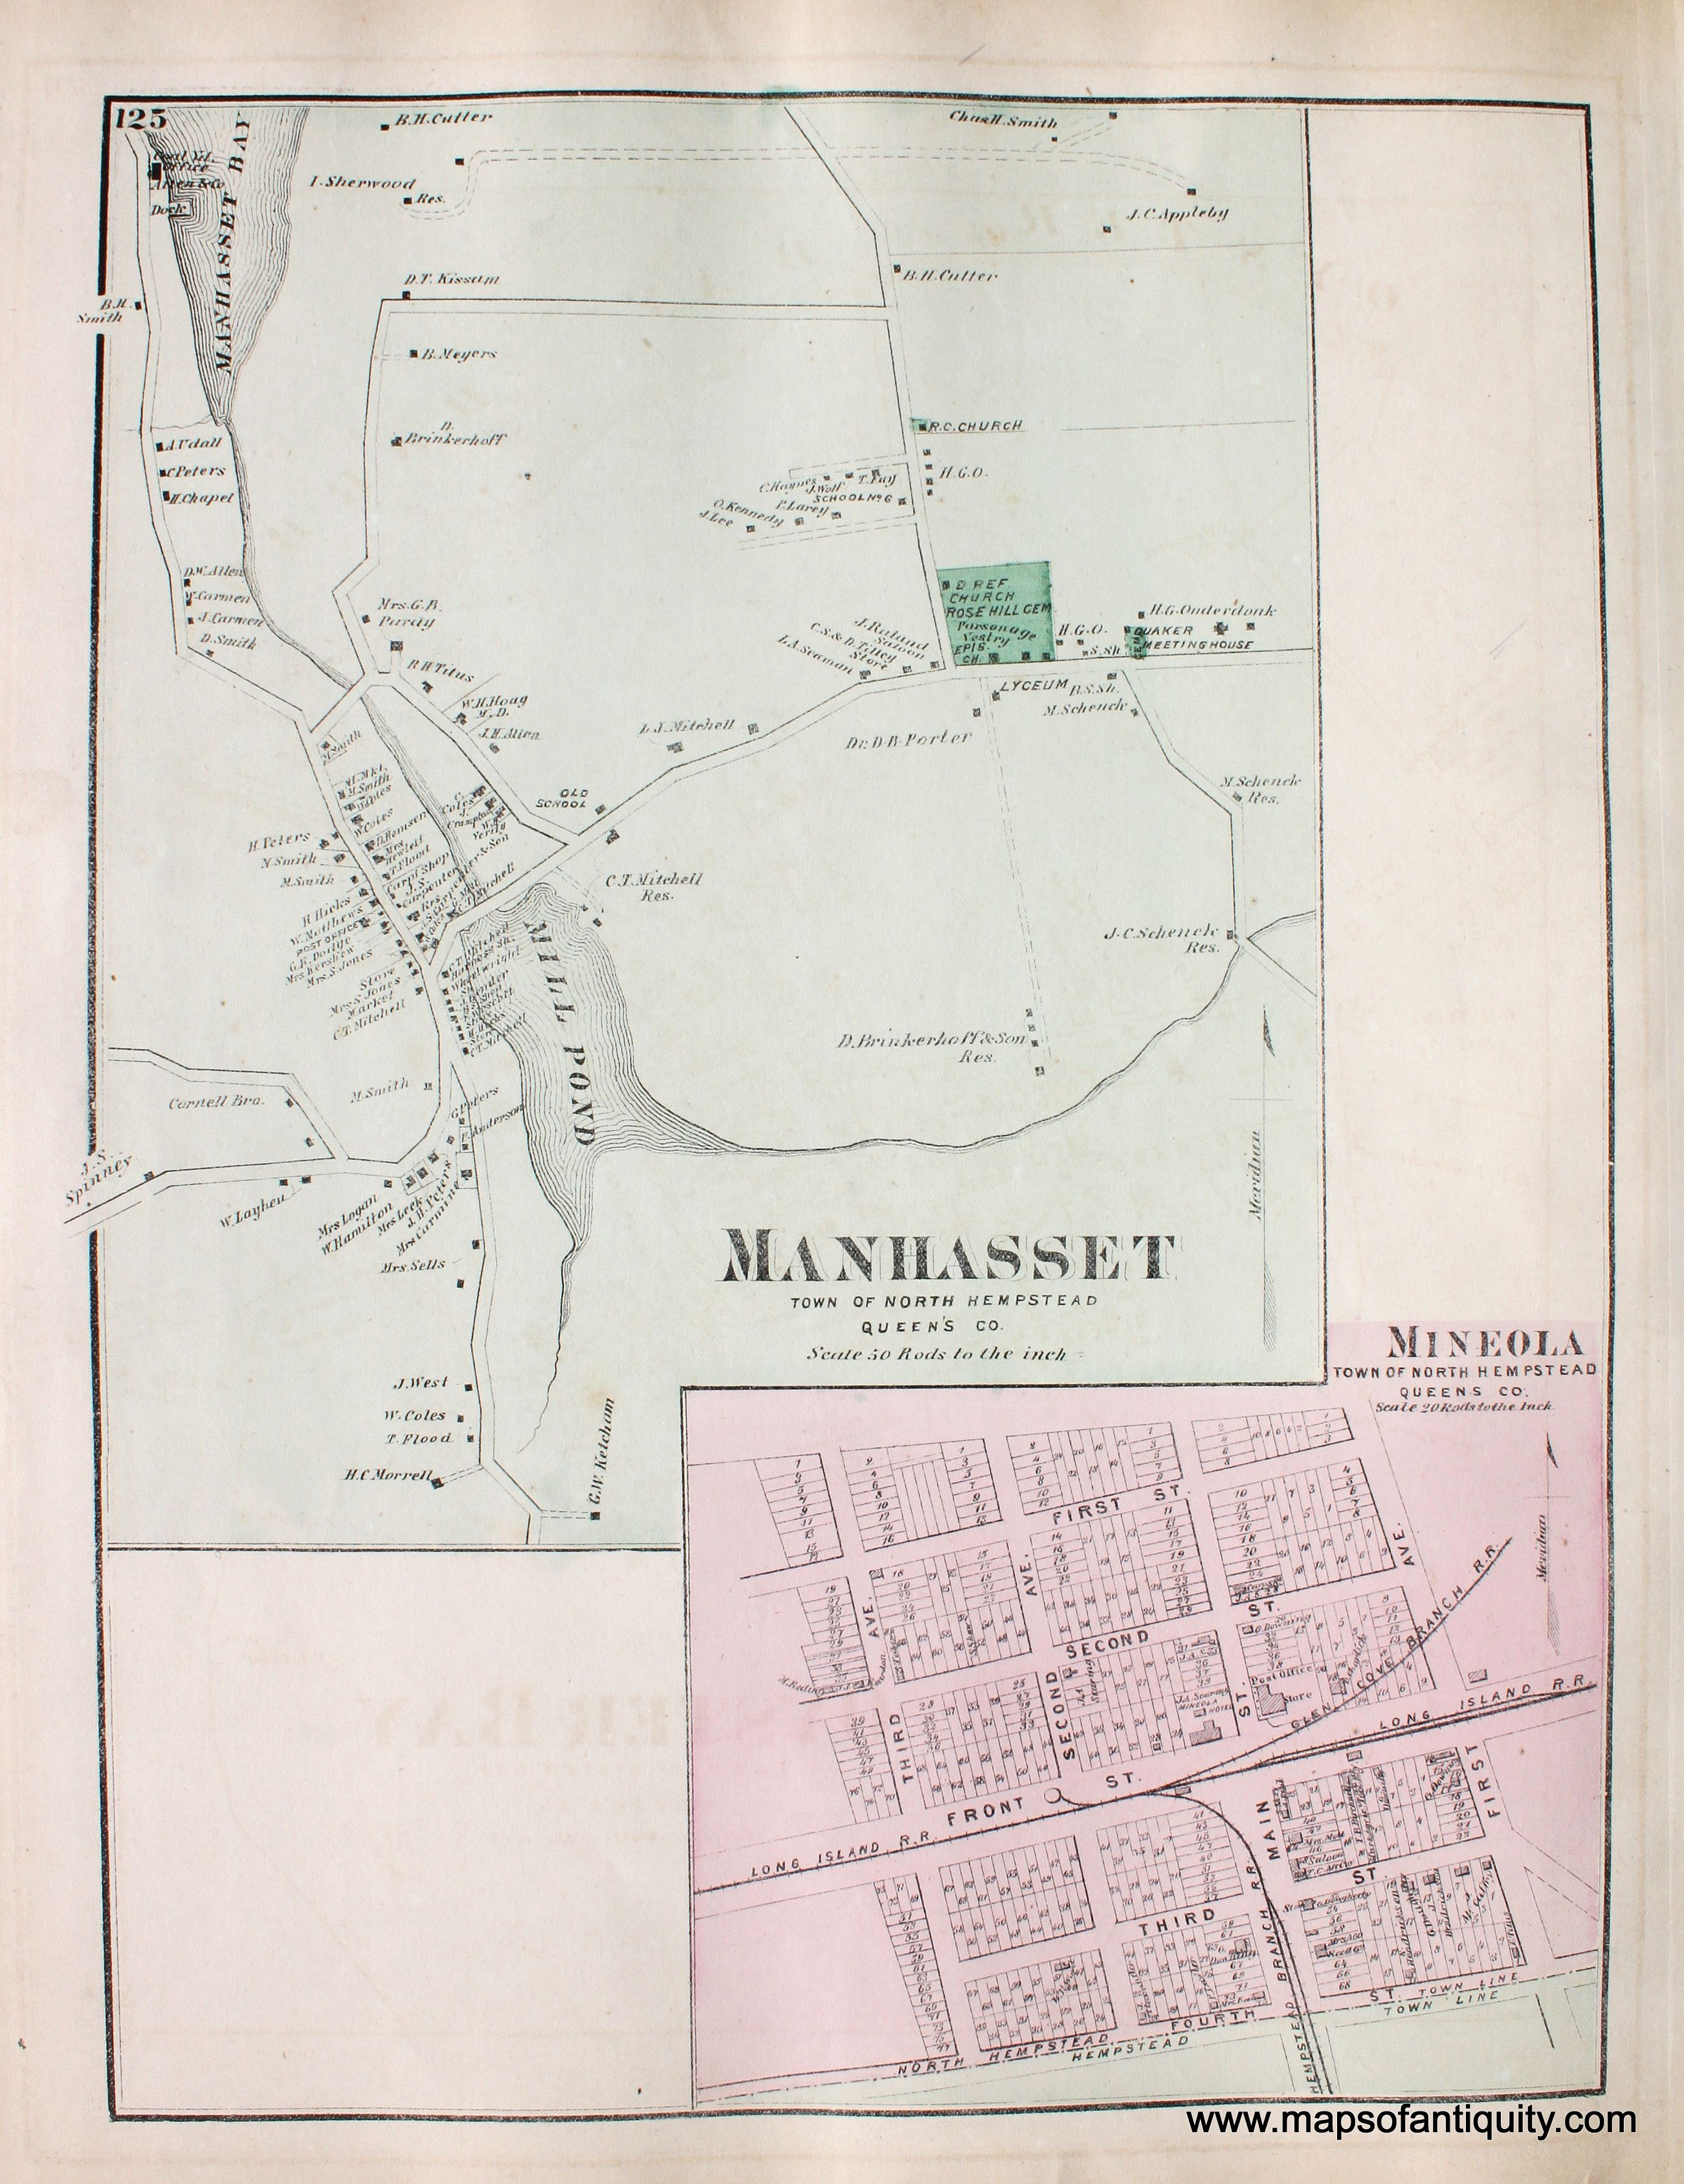 1873 D.G. Beers & Co. map of Mineola in the bottom right corner ...